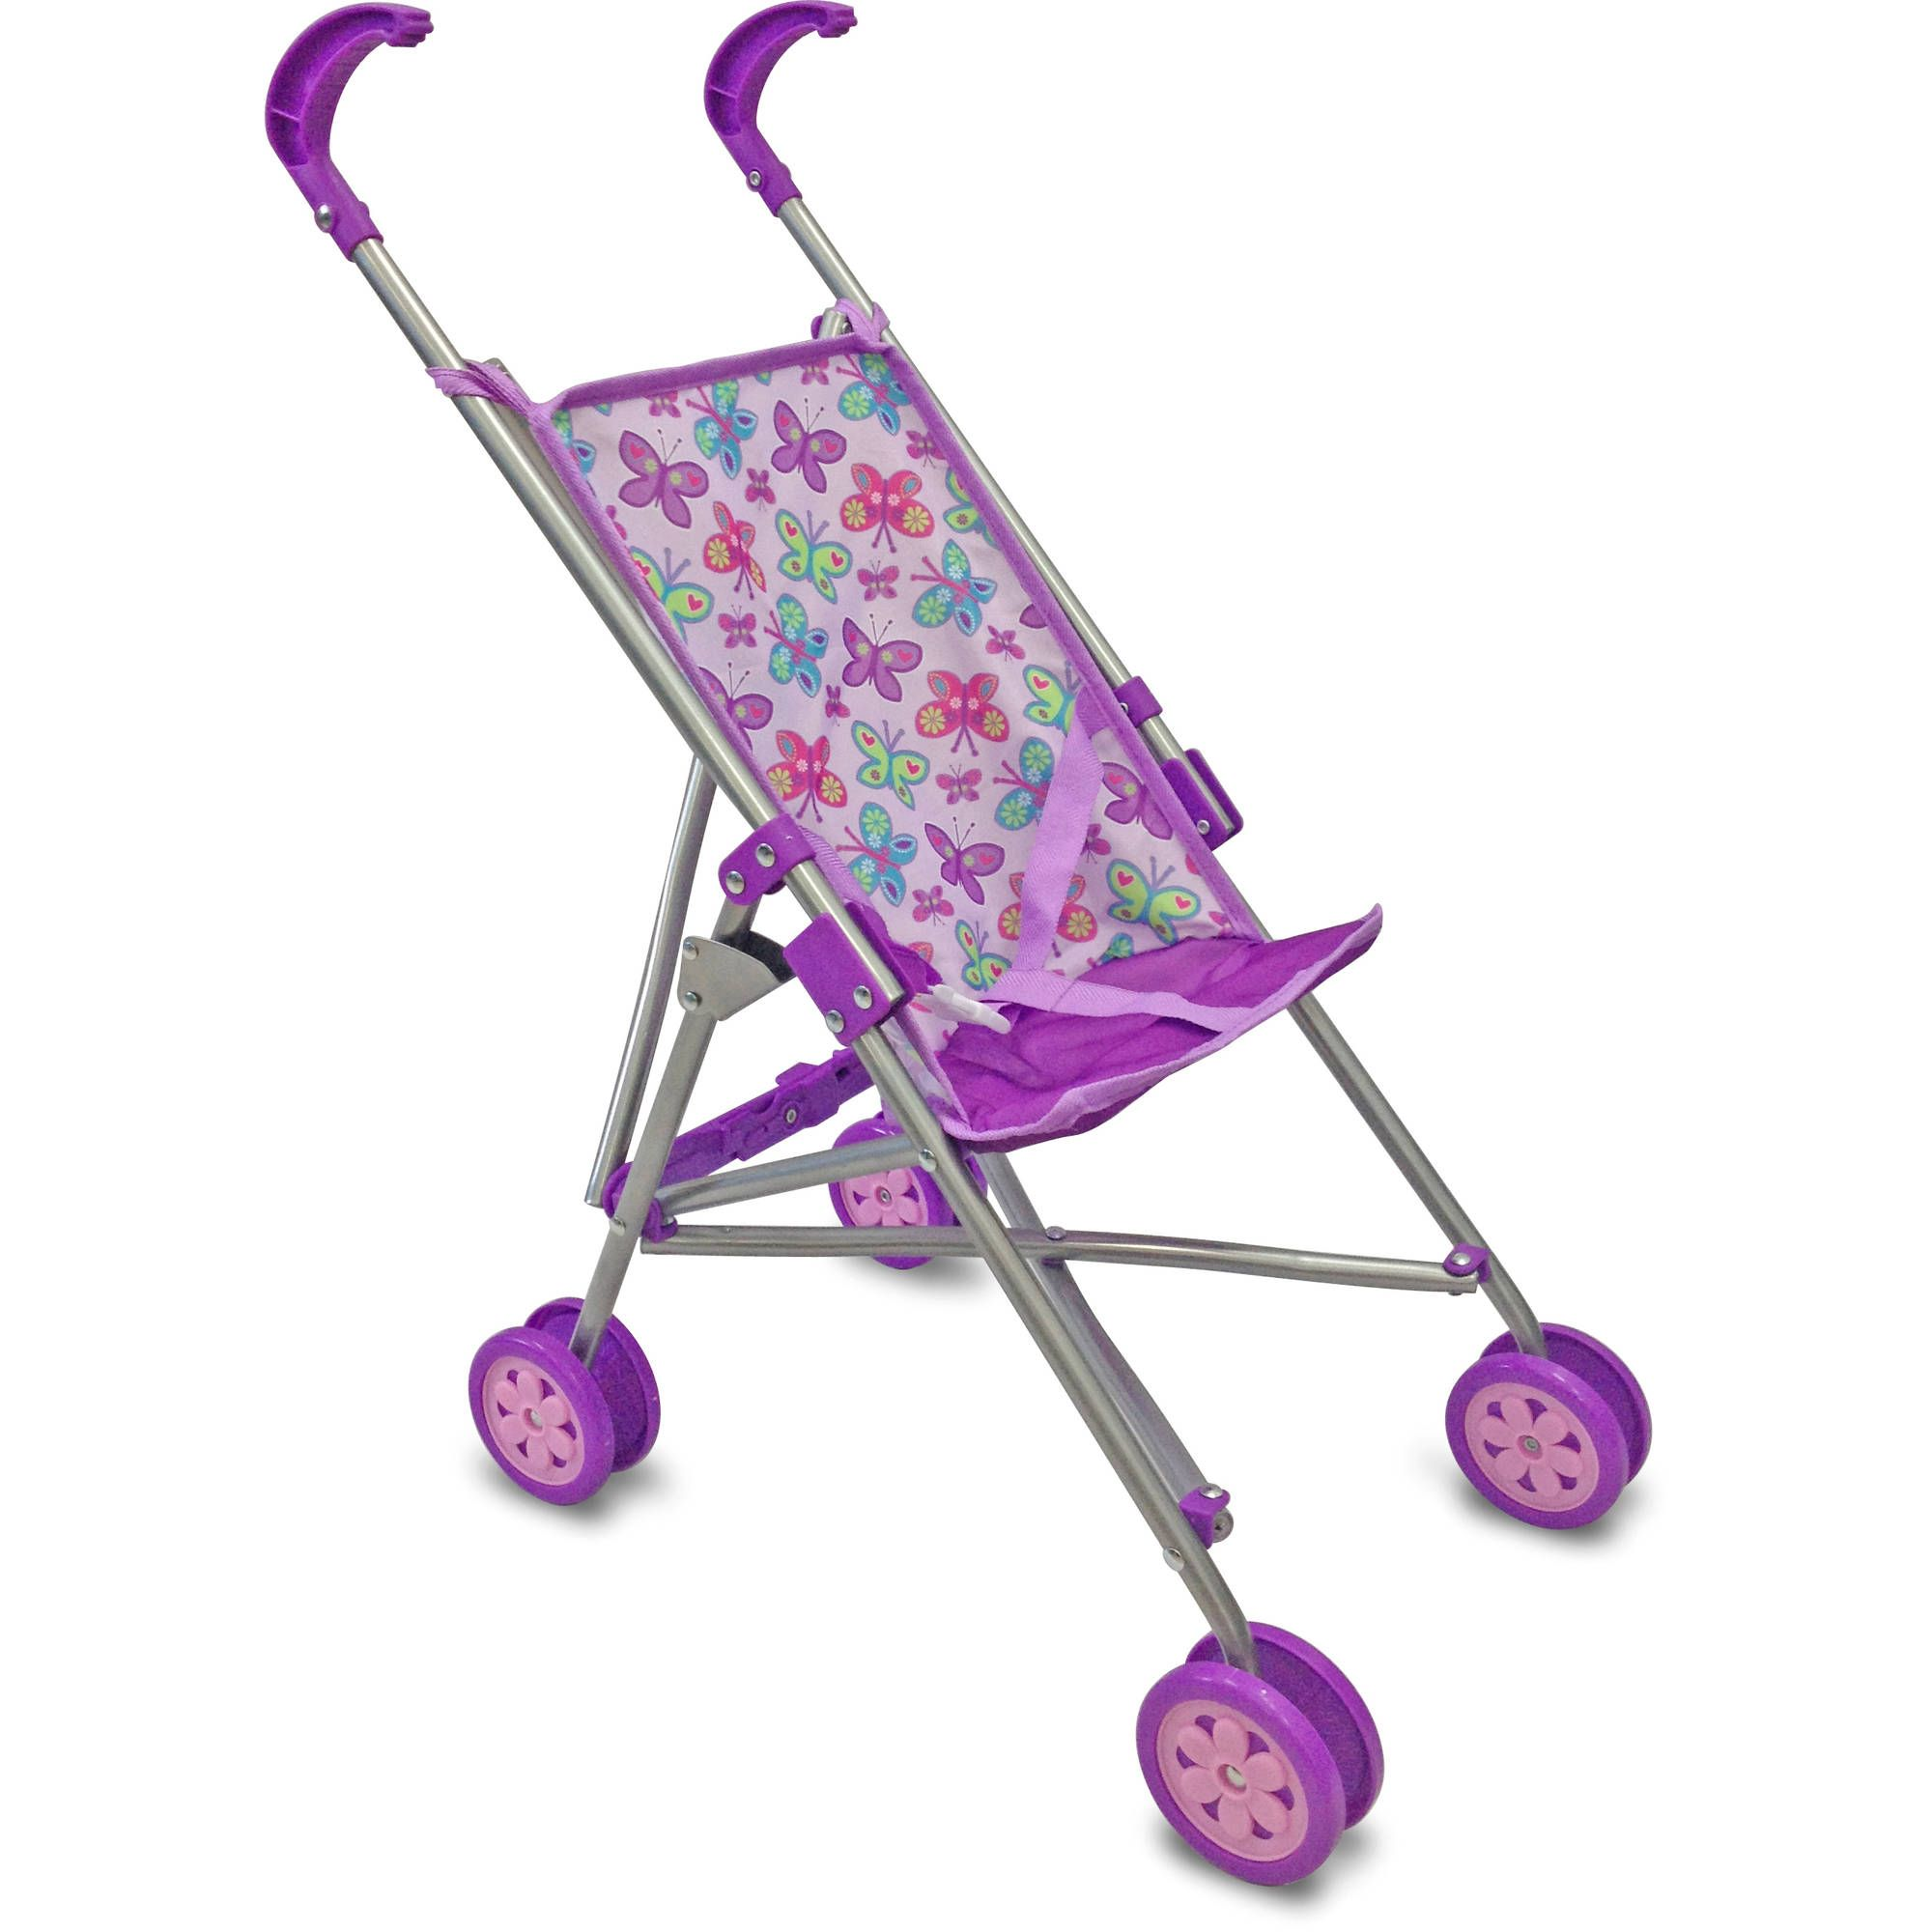 Toys | Baby doll strollers, Baby alive, Umbrella stroller